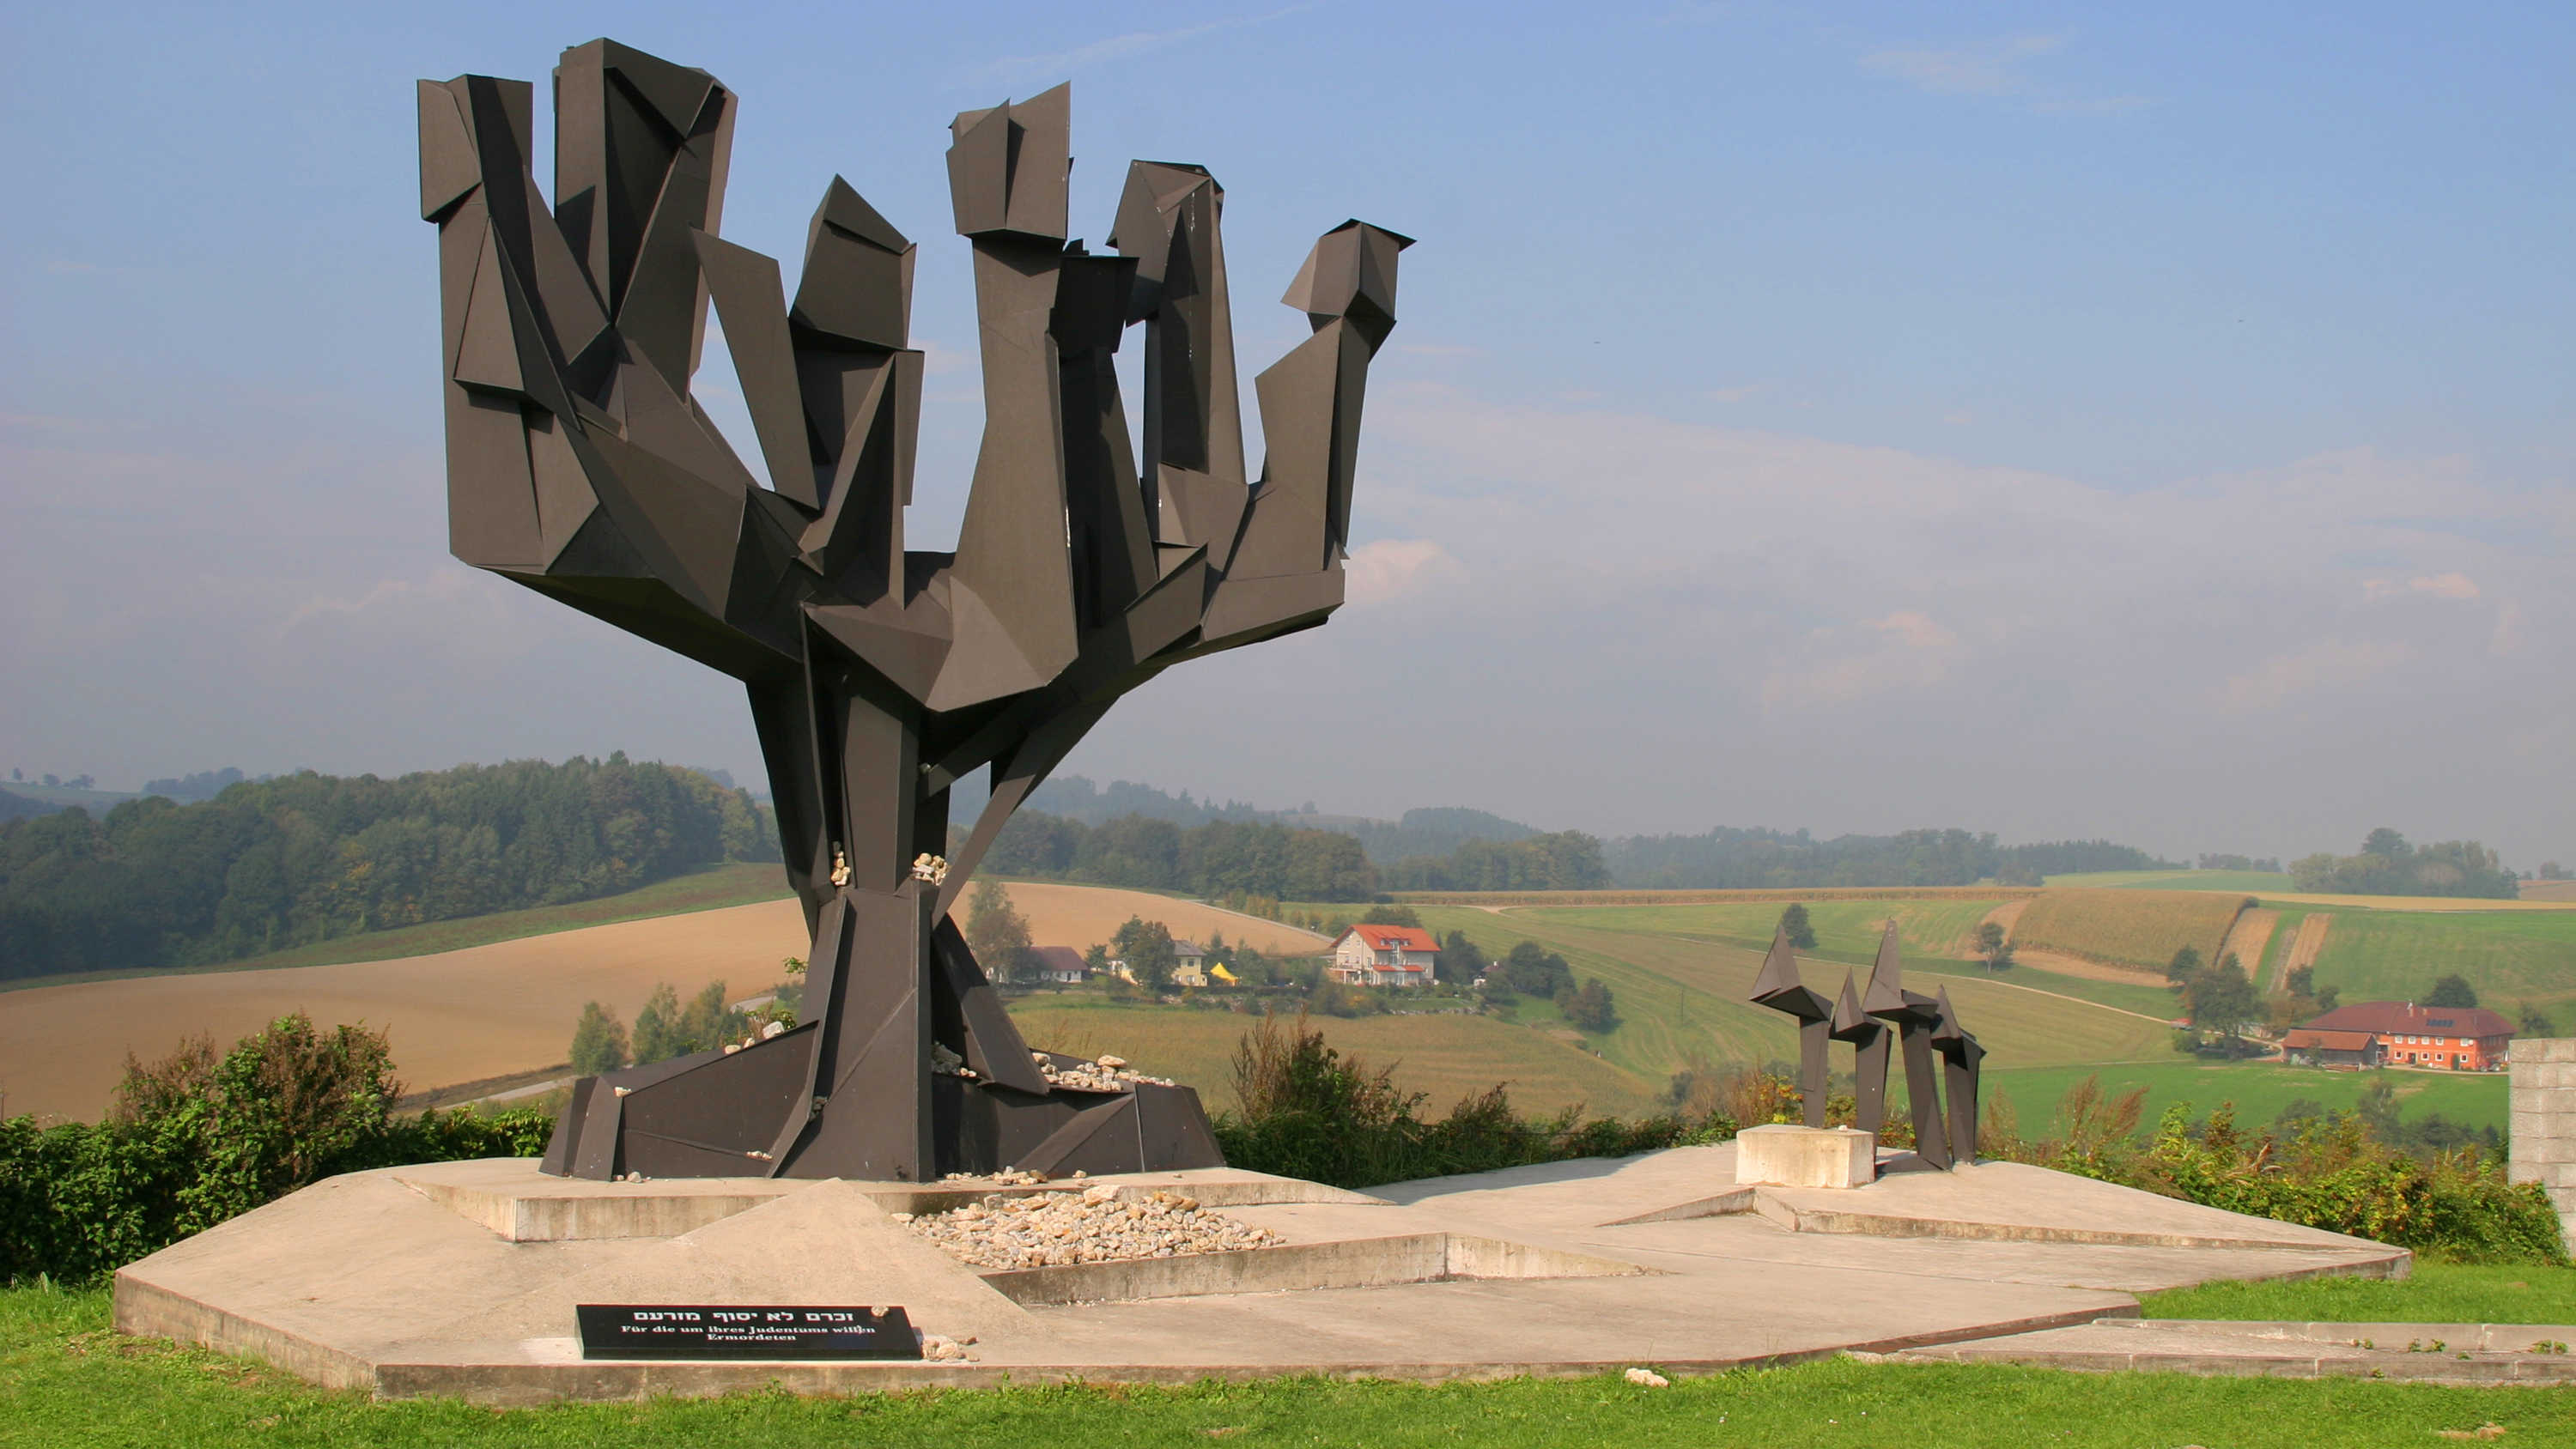 Mauthausen Concentration Camp memorial